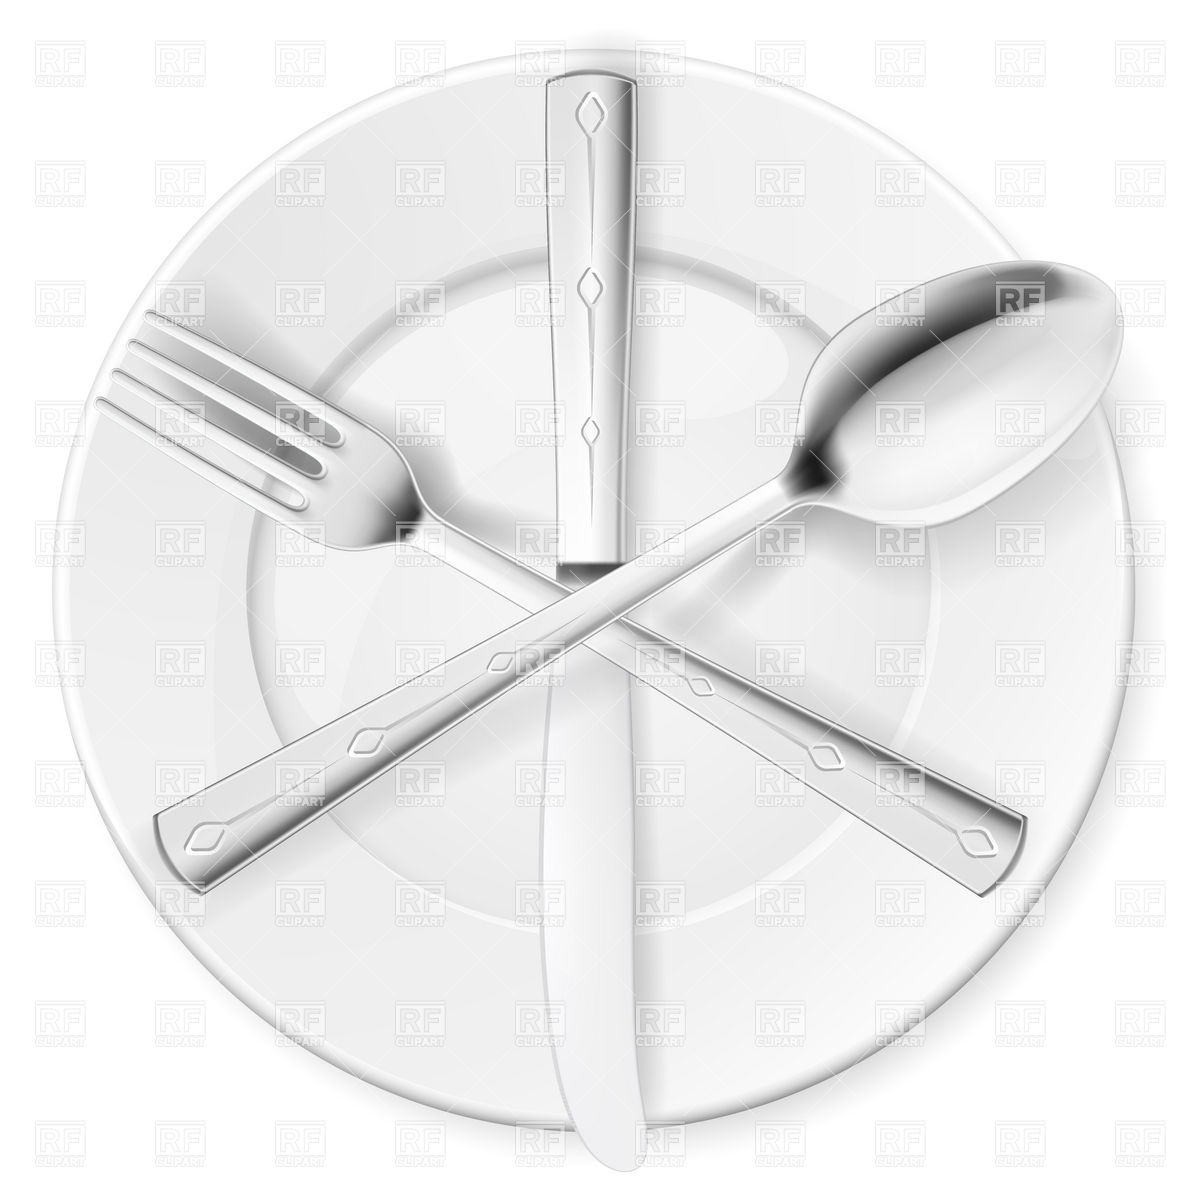 Crossed Fork Spoon And Knife On White Plate 6903 Objects Download